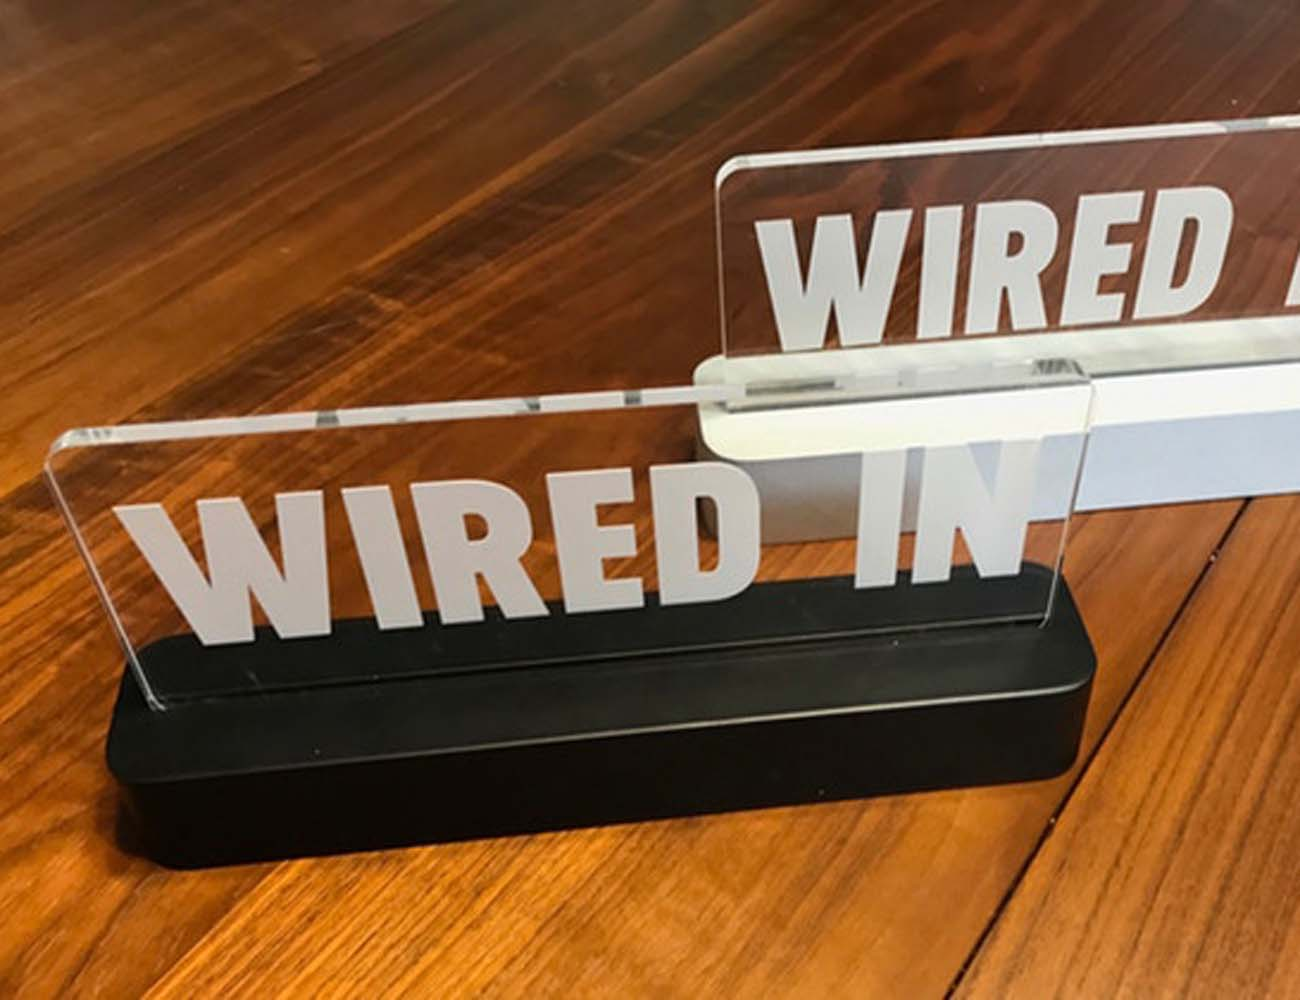 Wired In – Wireless Productivity Sign With Arduino & HomeKit